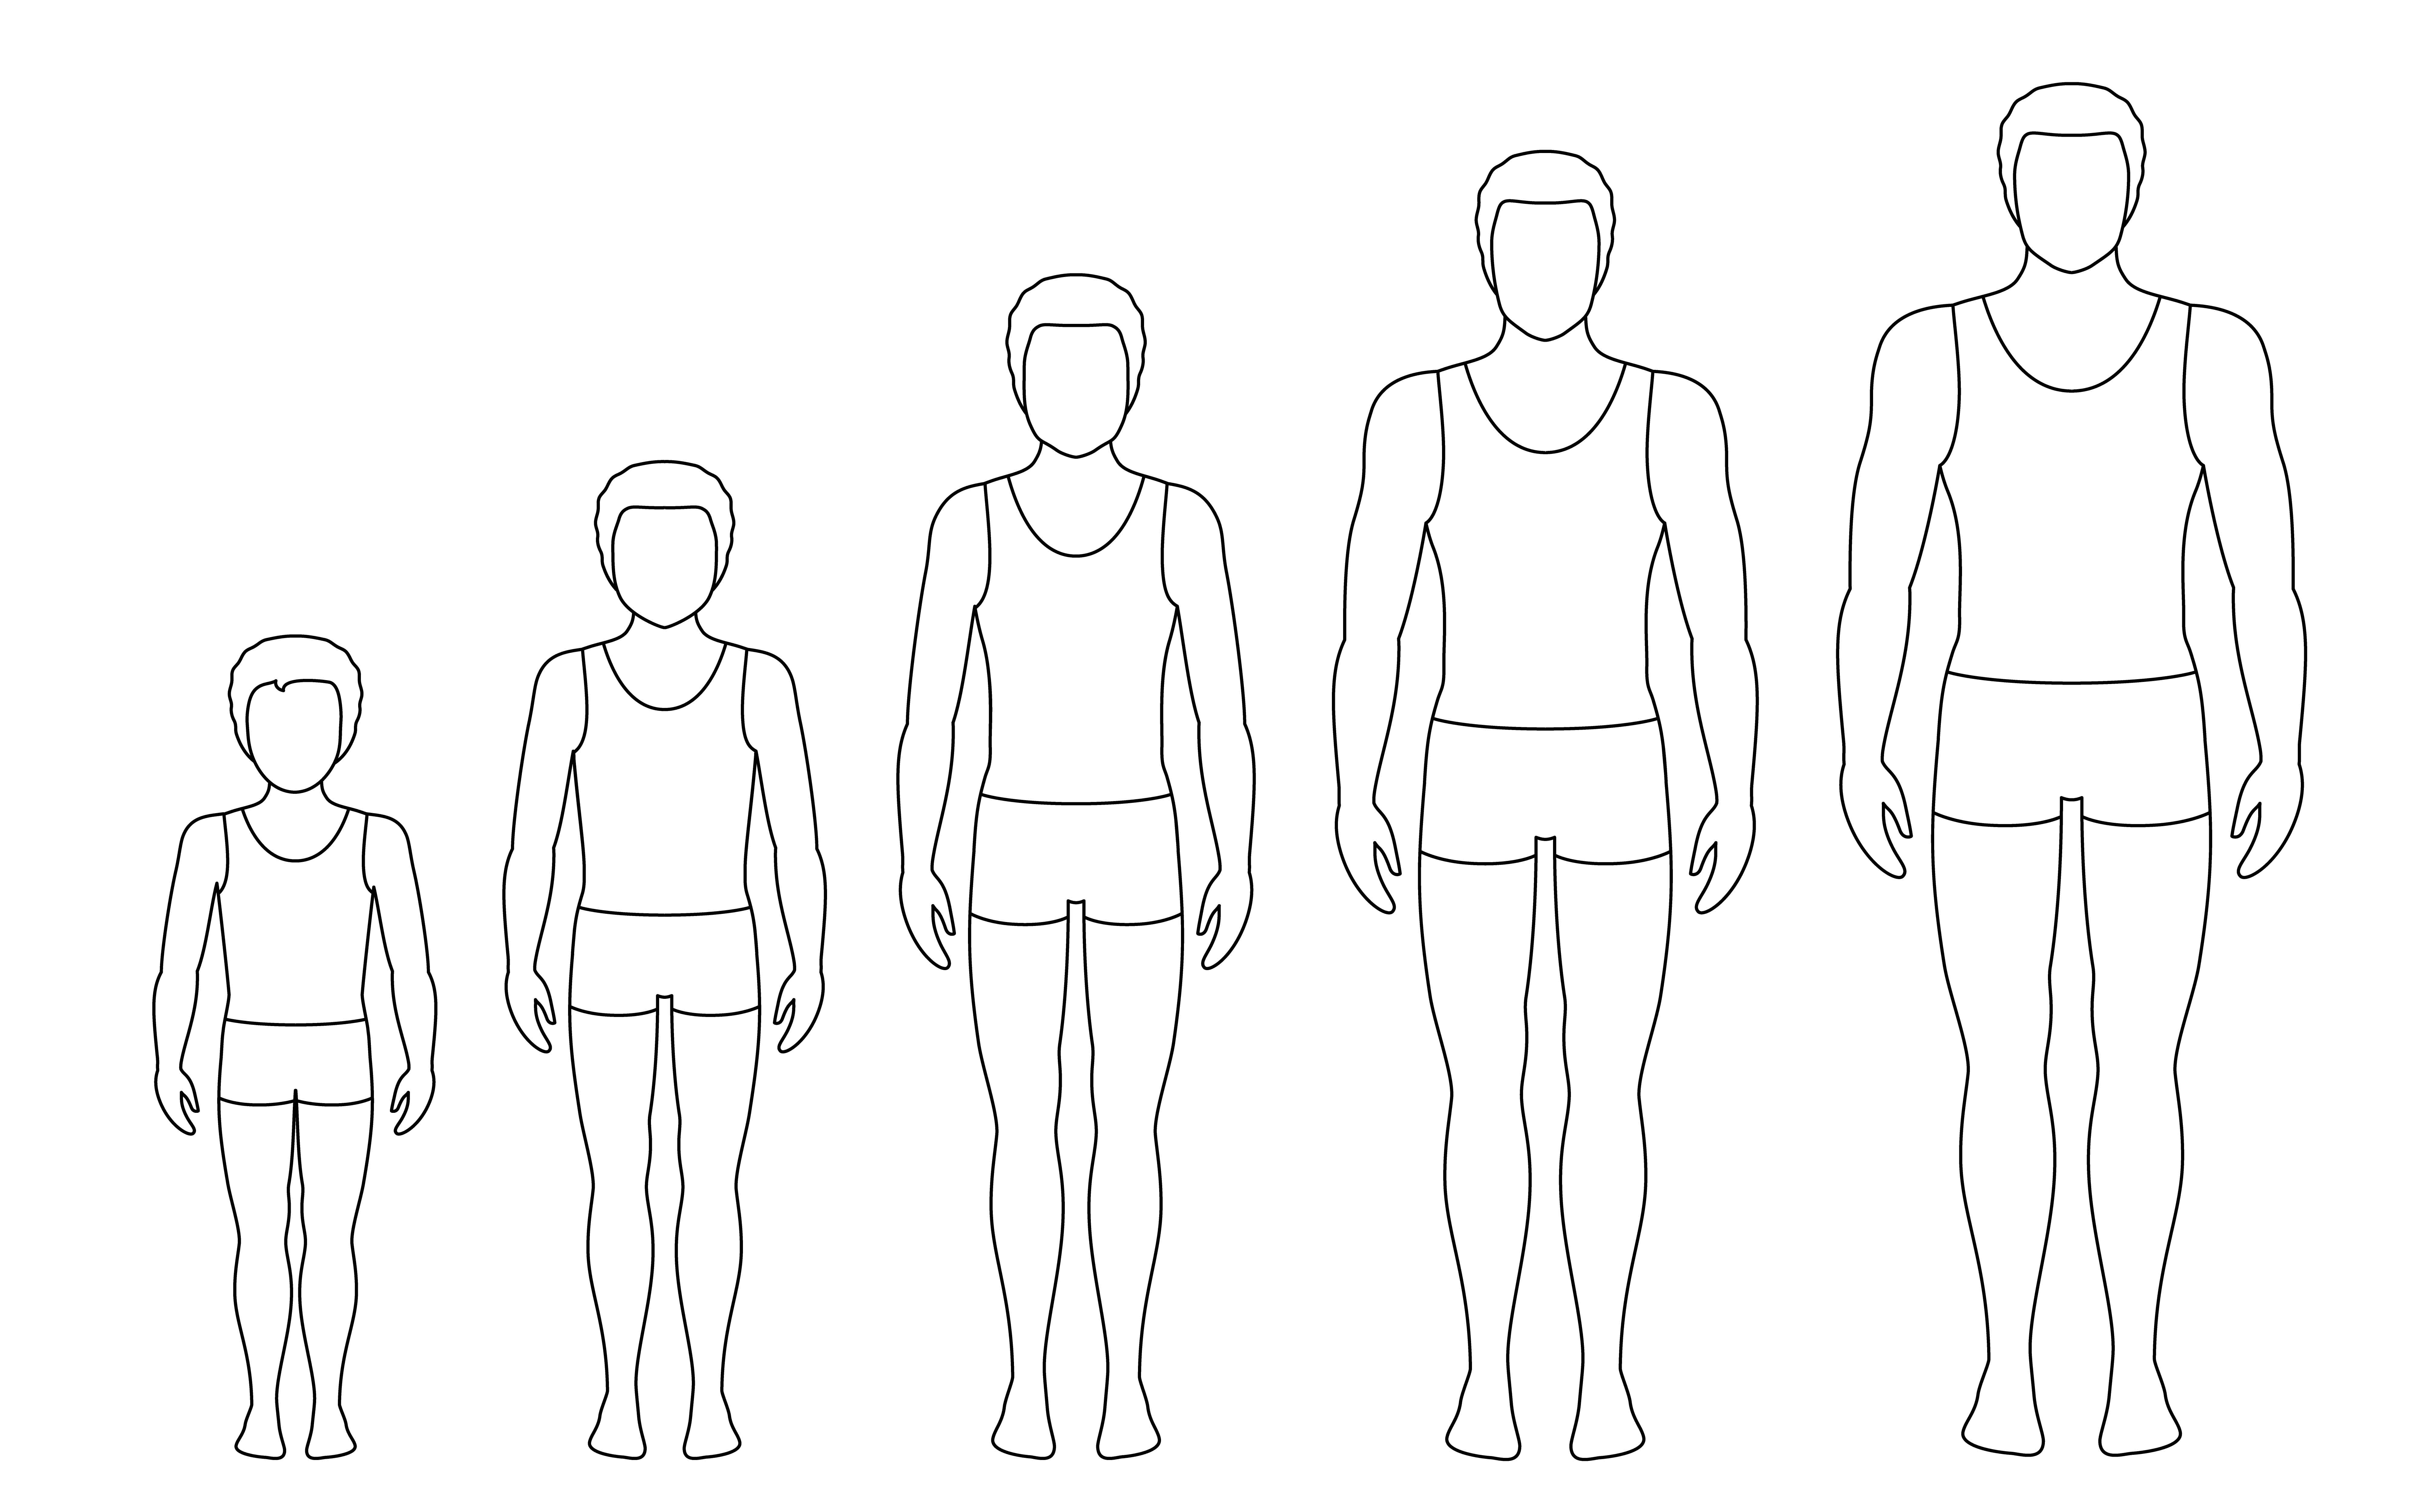 Man S Body Proportions Changing With Age Boy S Body Growth Stages Vector Contour Illustration Aging Concept Illustration With Different Man S Age From Baby To Adult European Men Flat Style Download Free Vectors